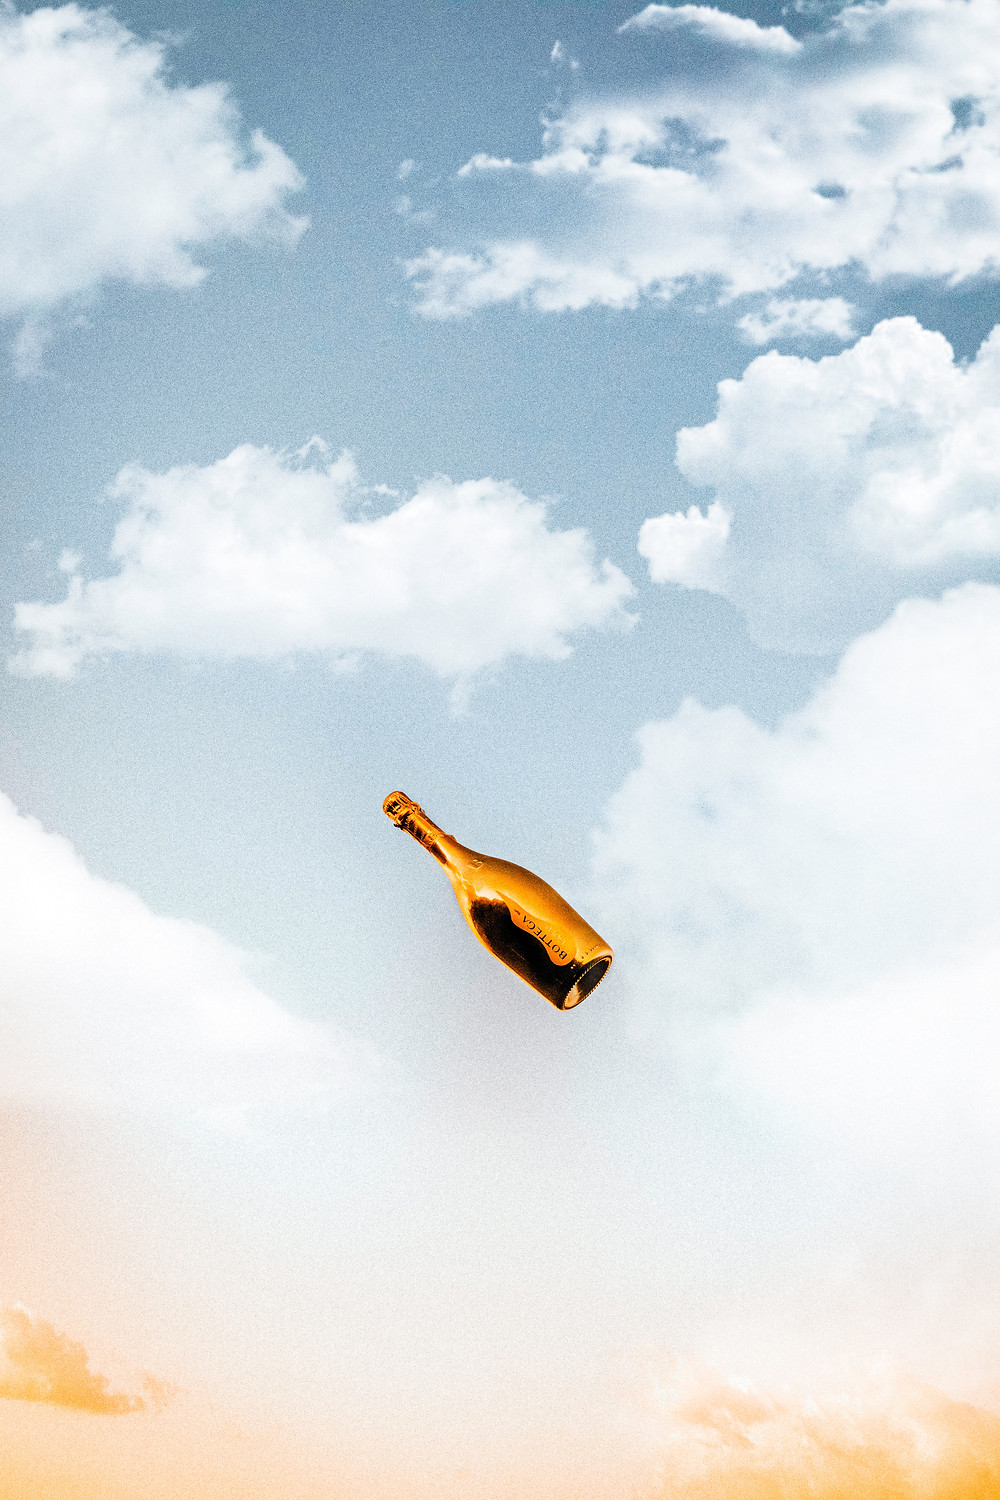 Champagne bottle in the sky